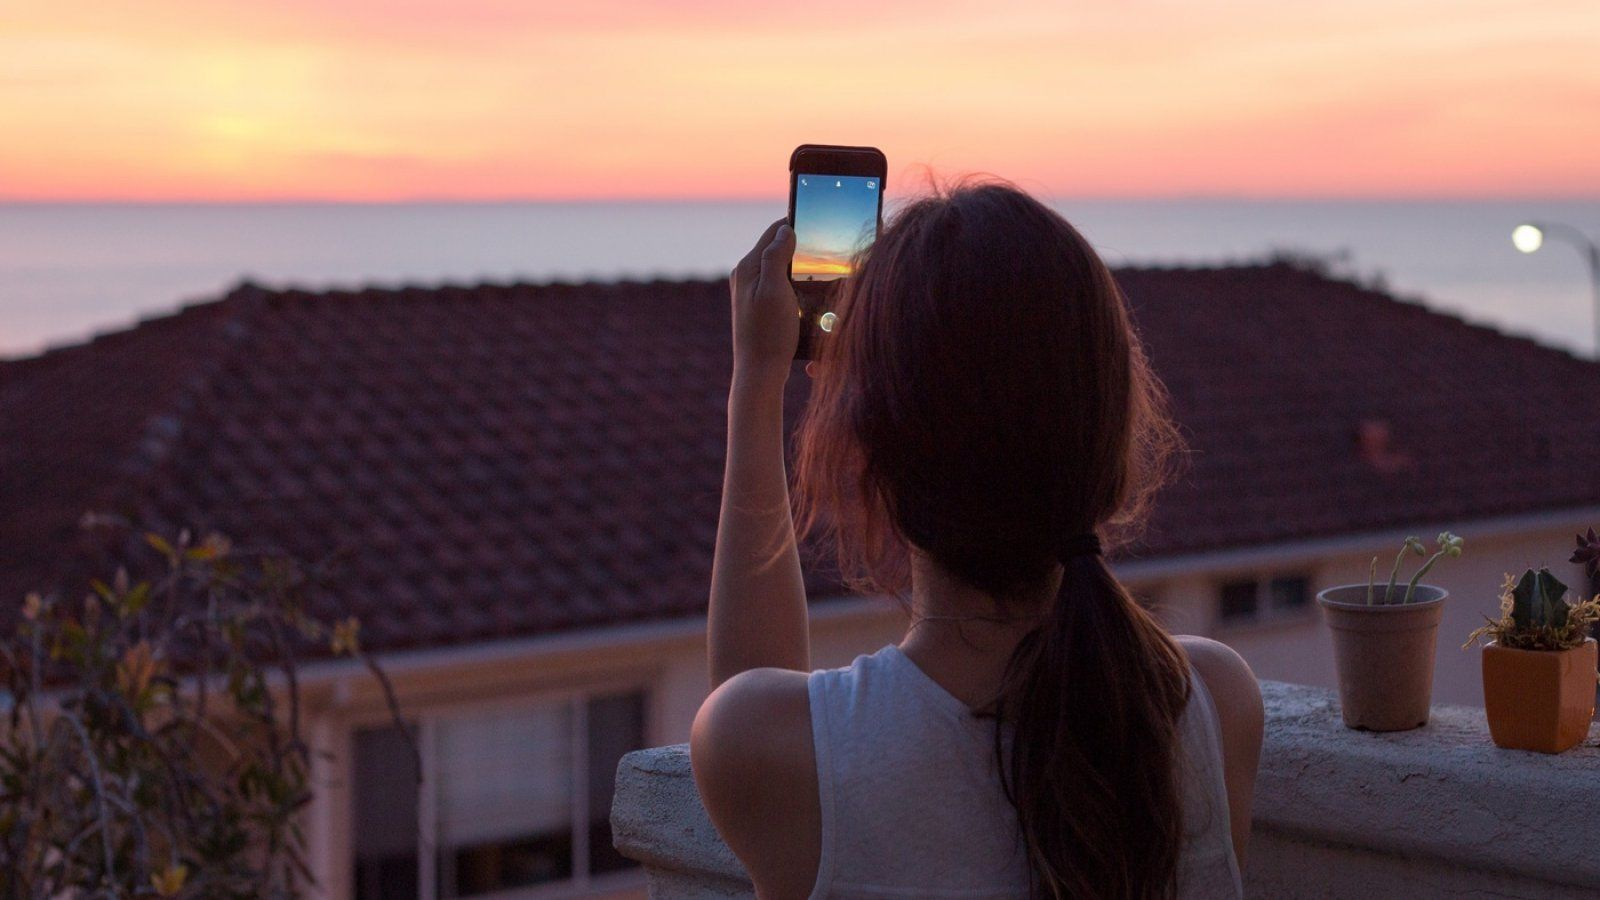 A female student takes a photo of sunset on her iPhone from her Flex apartment